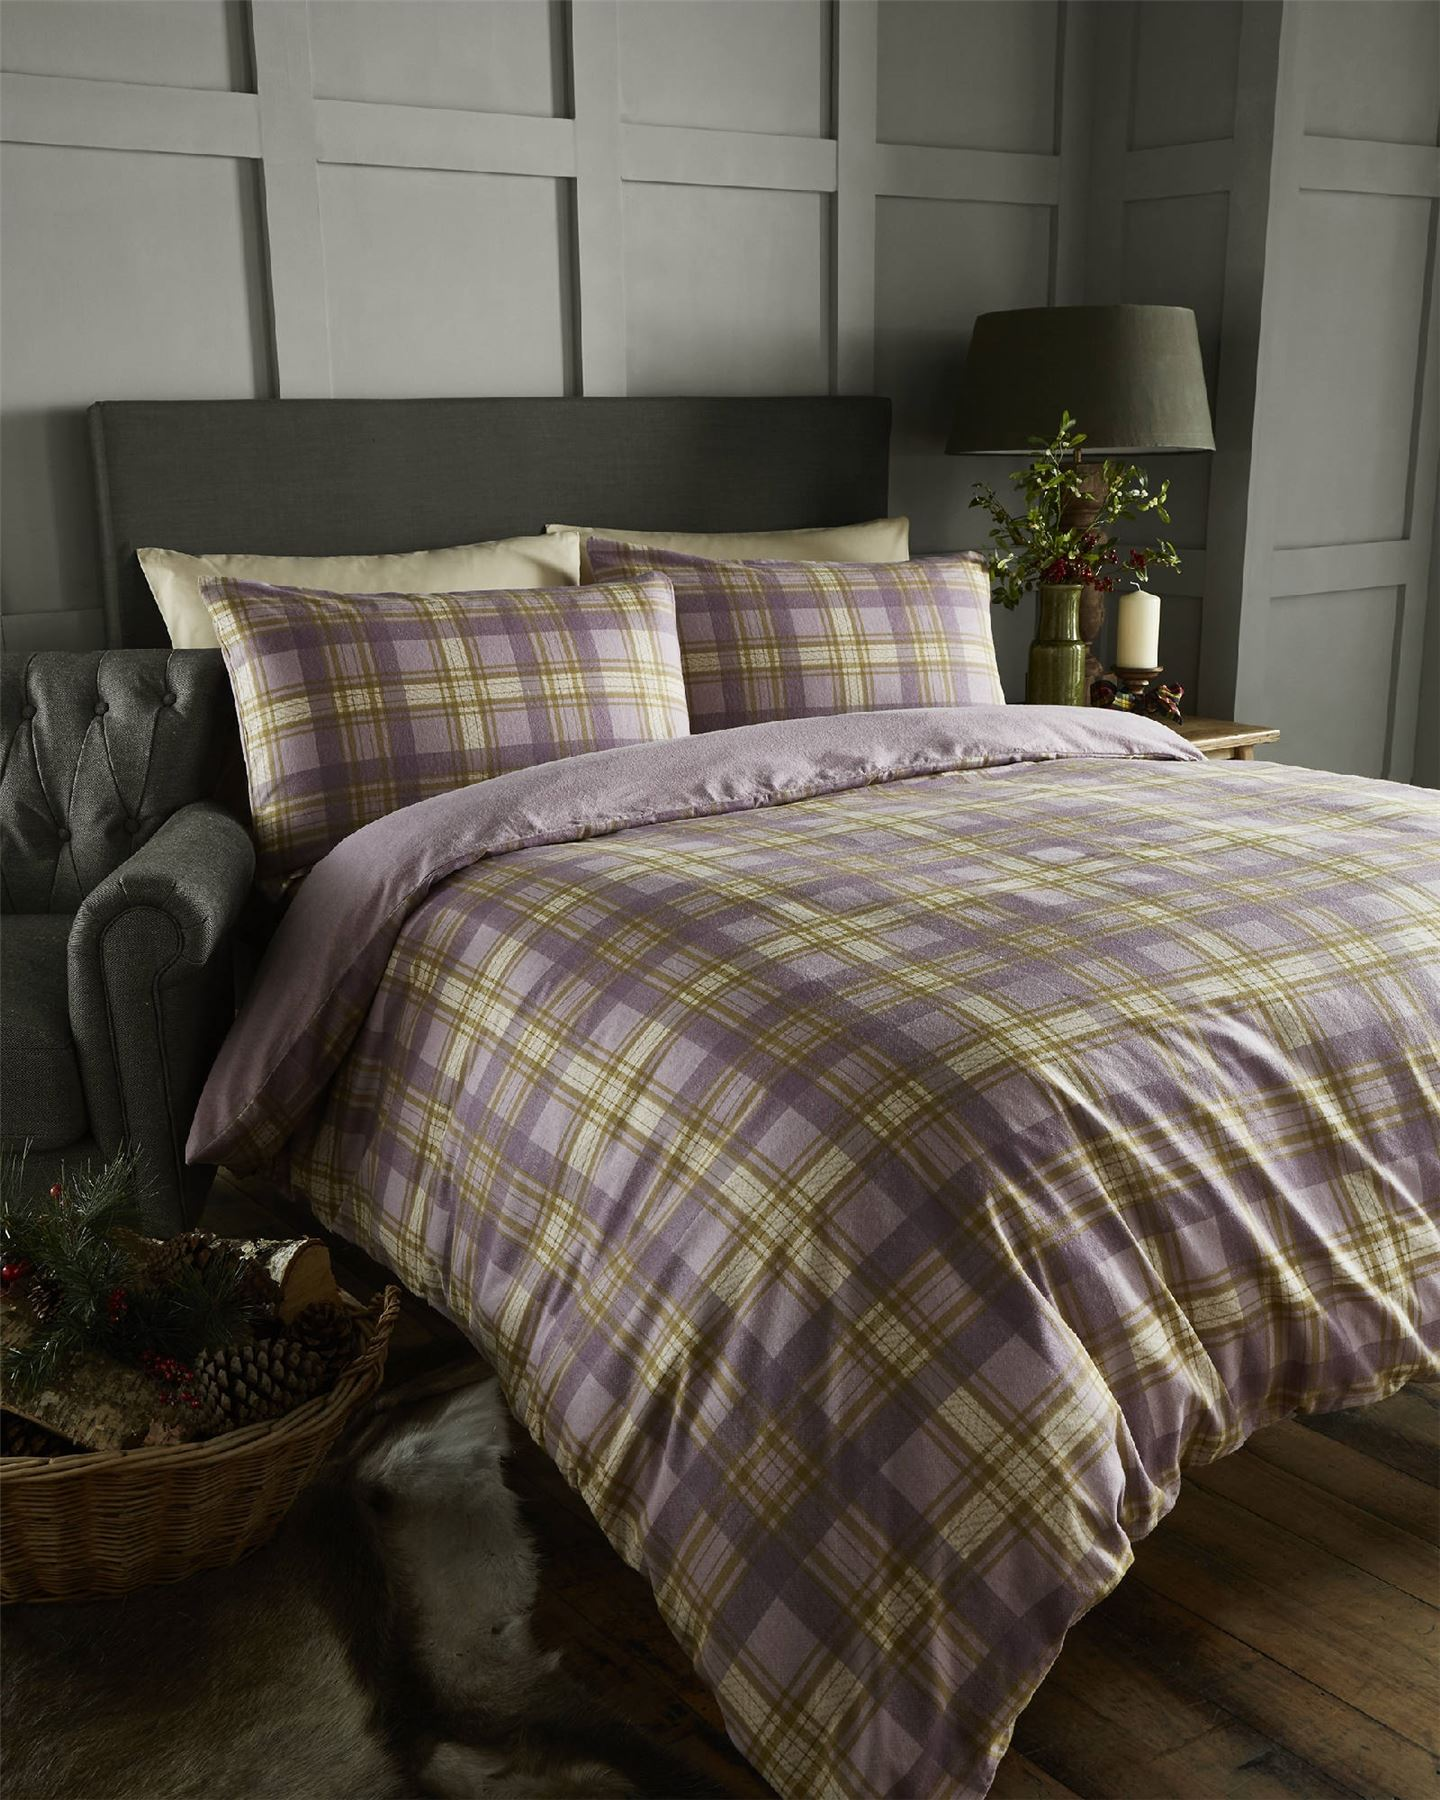 arran tartan 100 brushed cotton flannelette thermal duvet. Black Bedroom Furniture Sets. Home Design Ideas